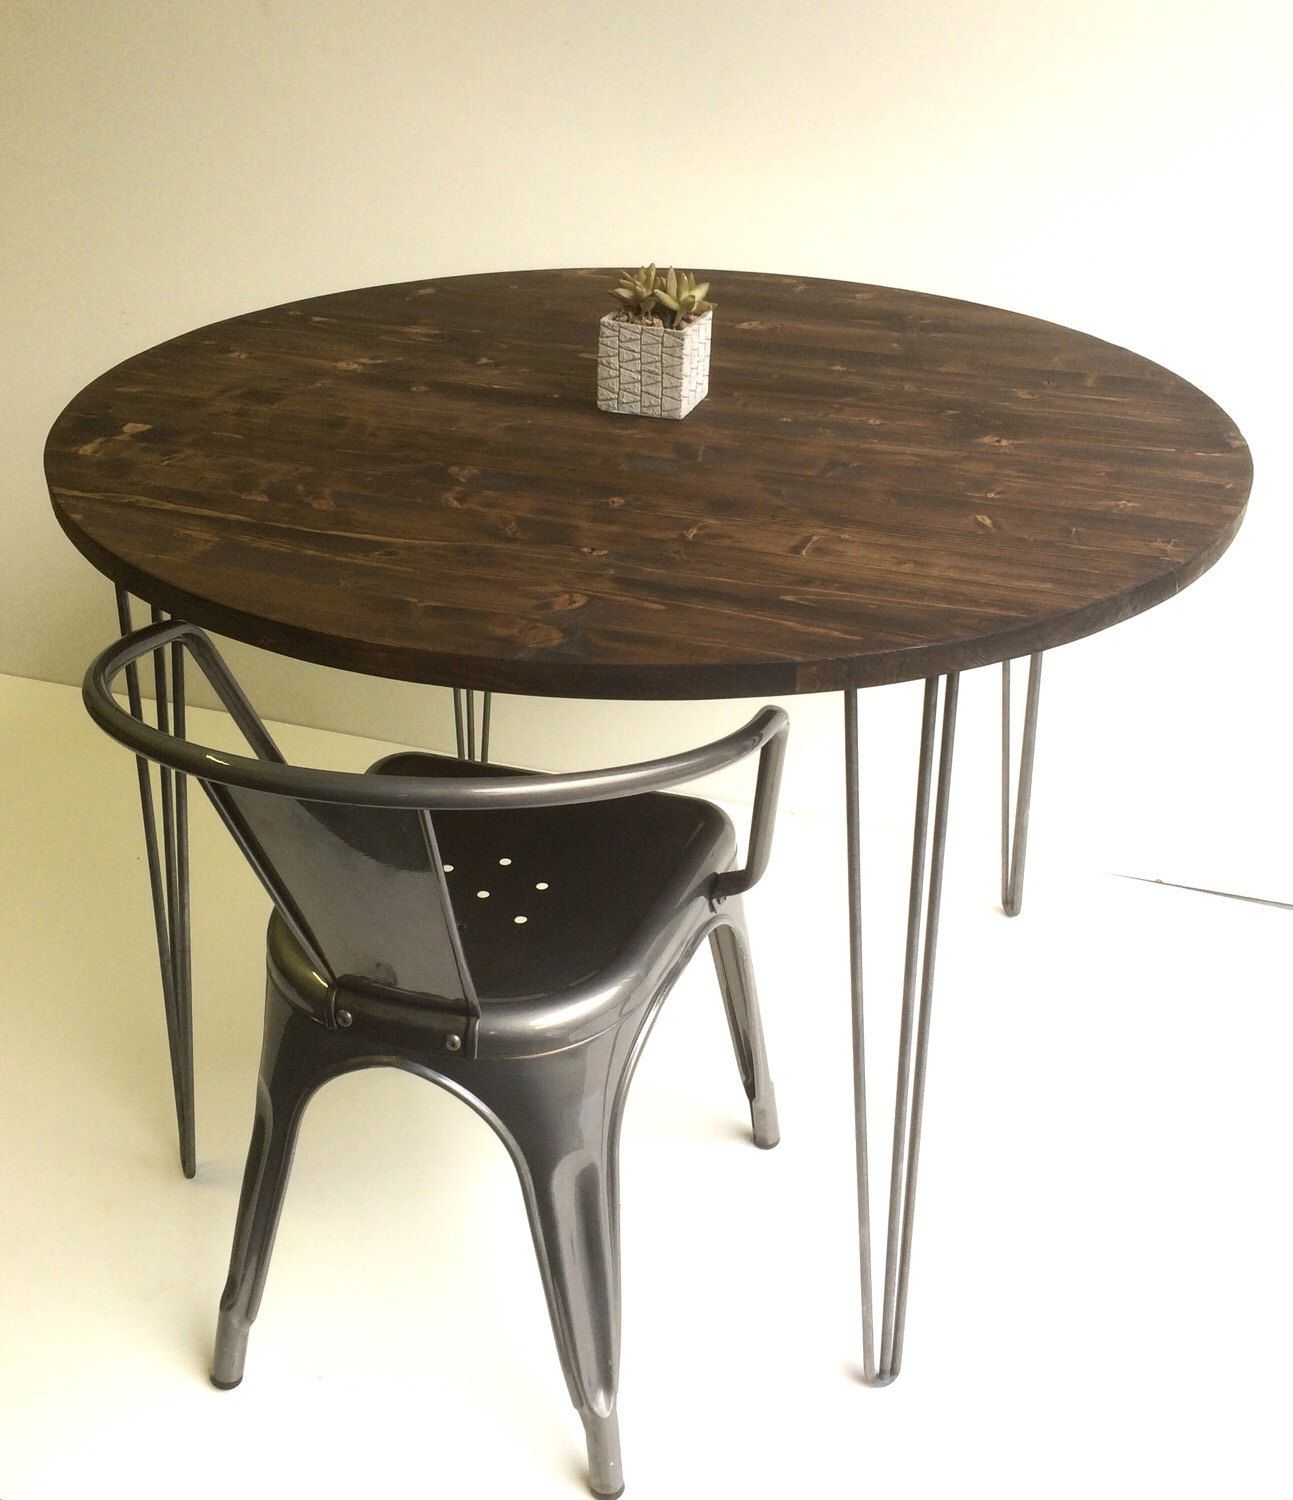 "40"" Round industrial chic kitchen table with handcrafted wood top"